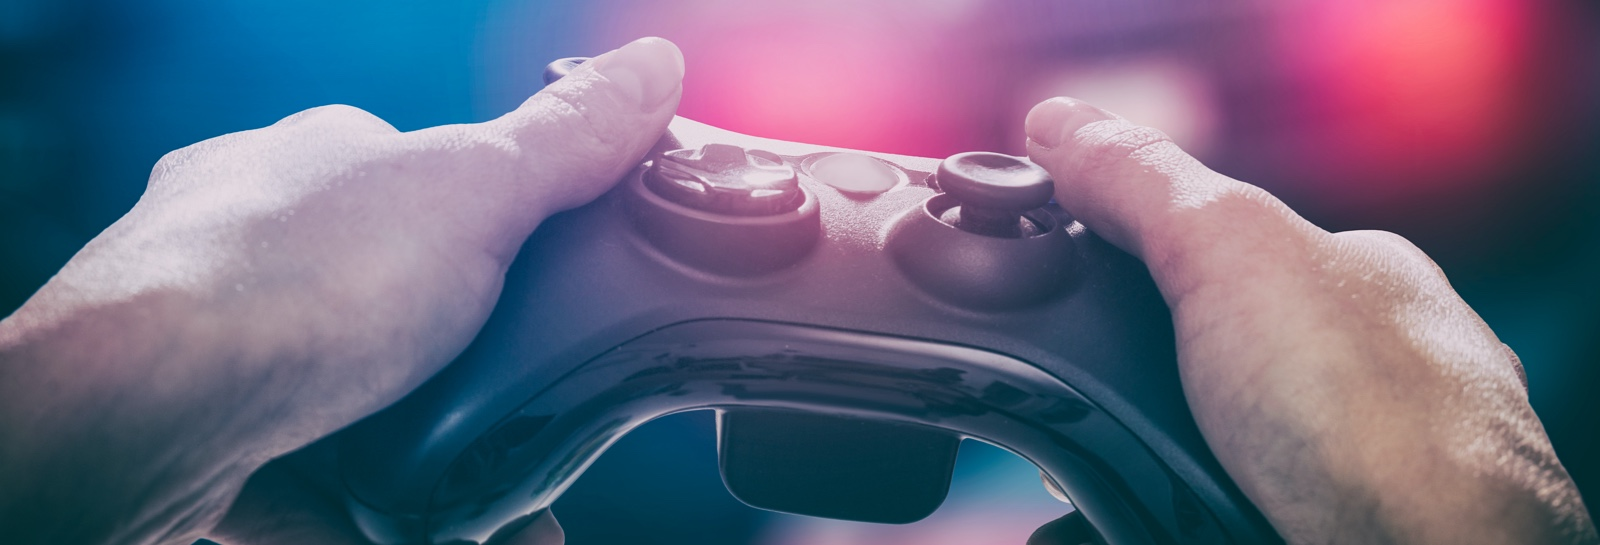 a person holding a video game controller